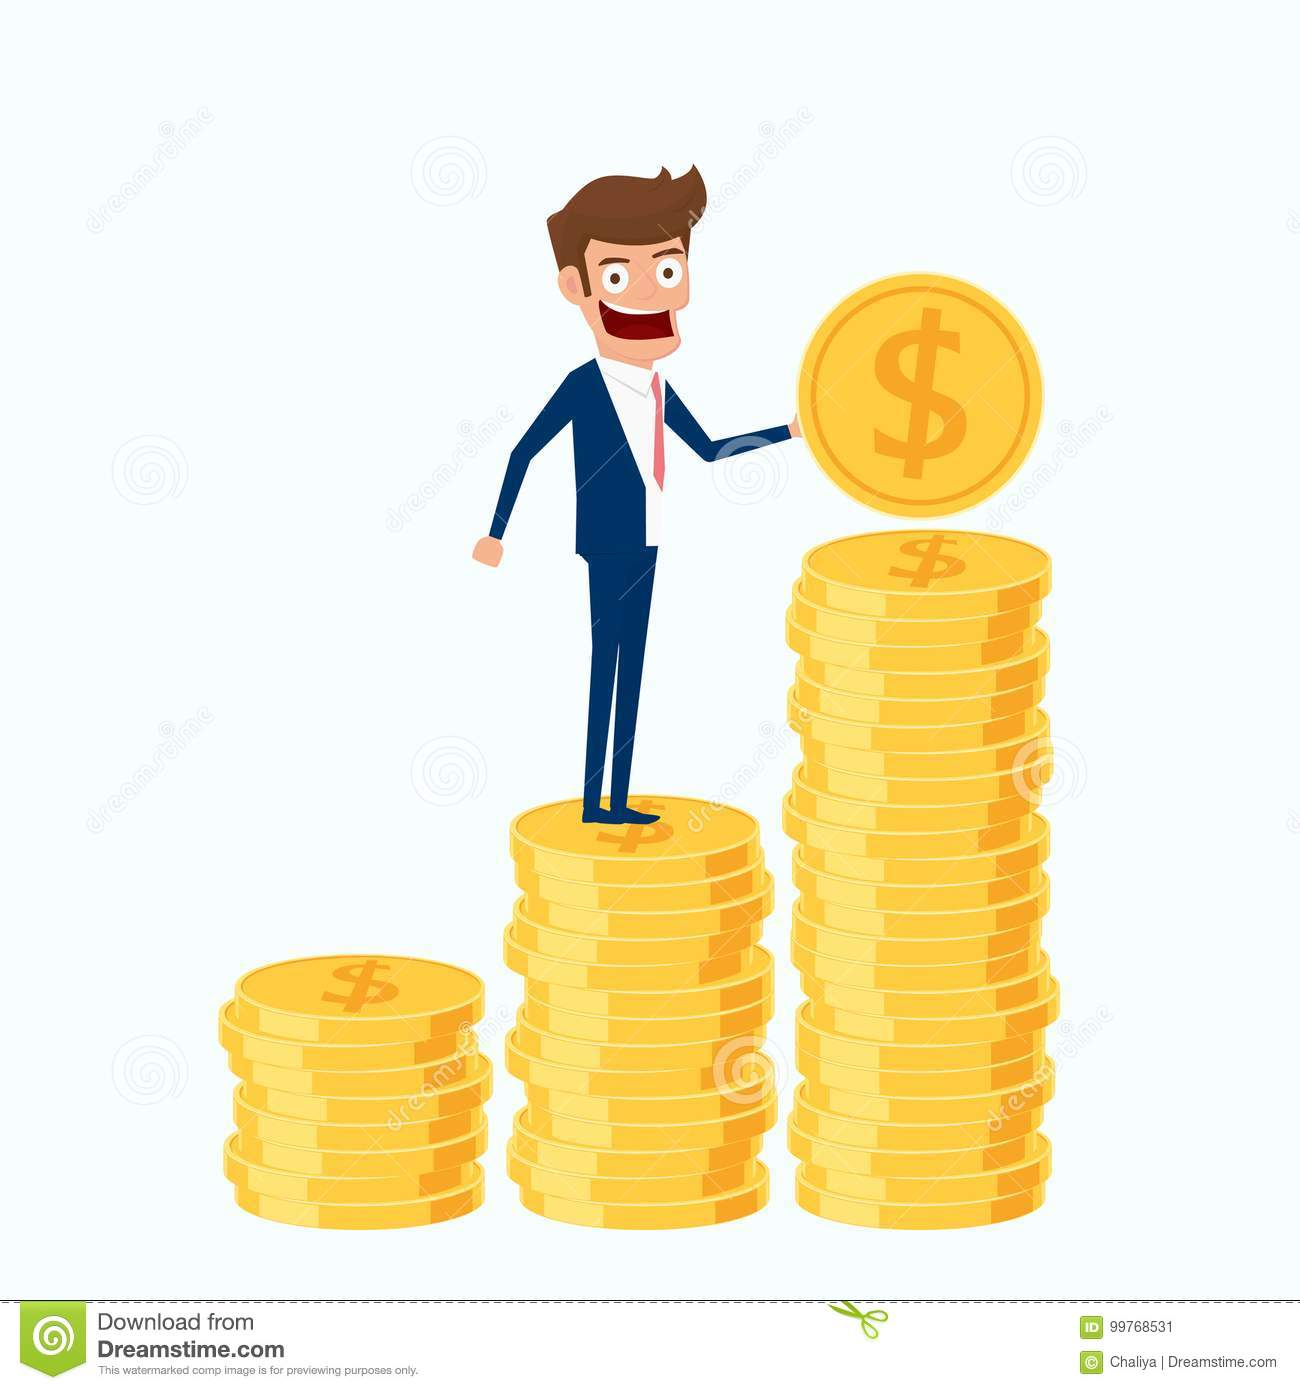 Investment and saving concept. Businessman holding gold coin and putting in the pile.